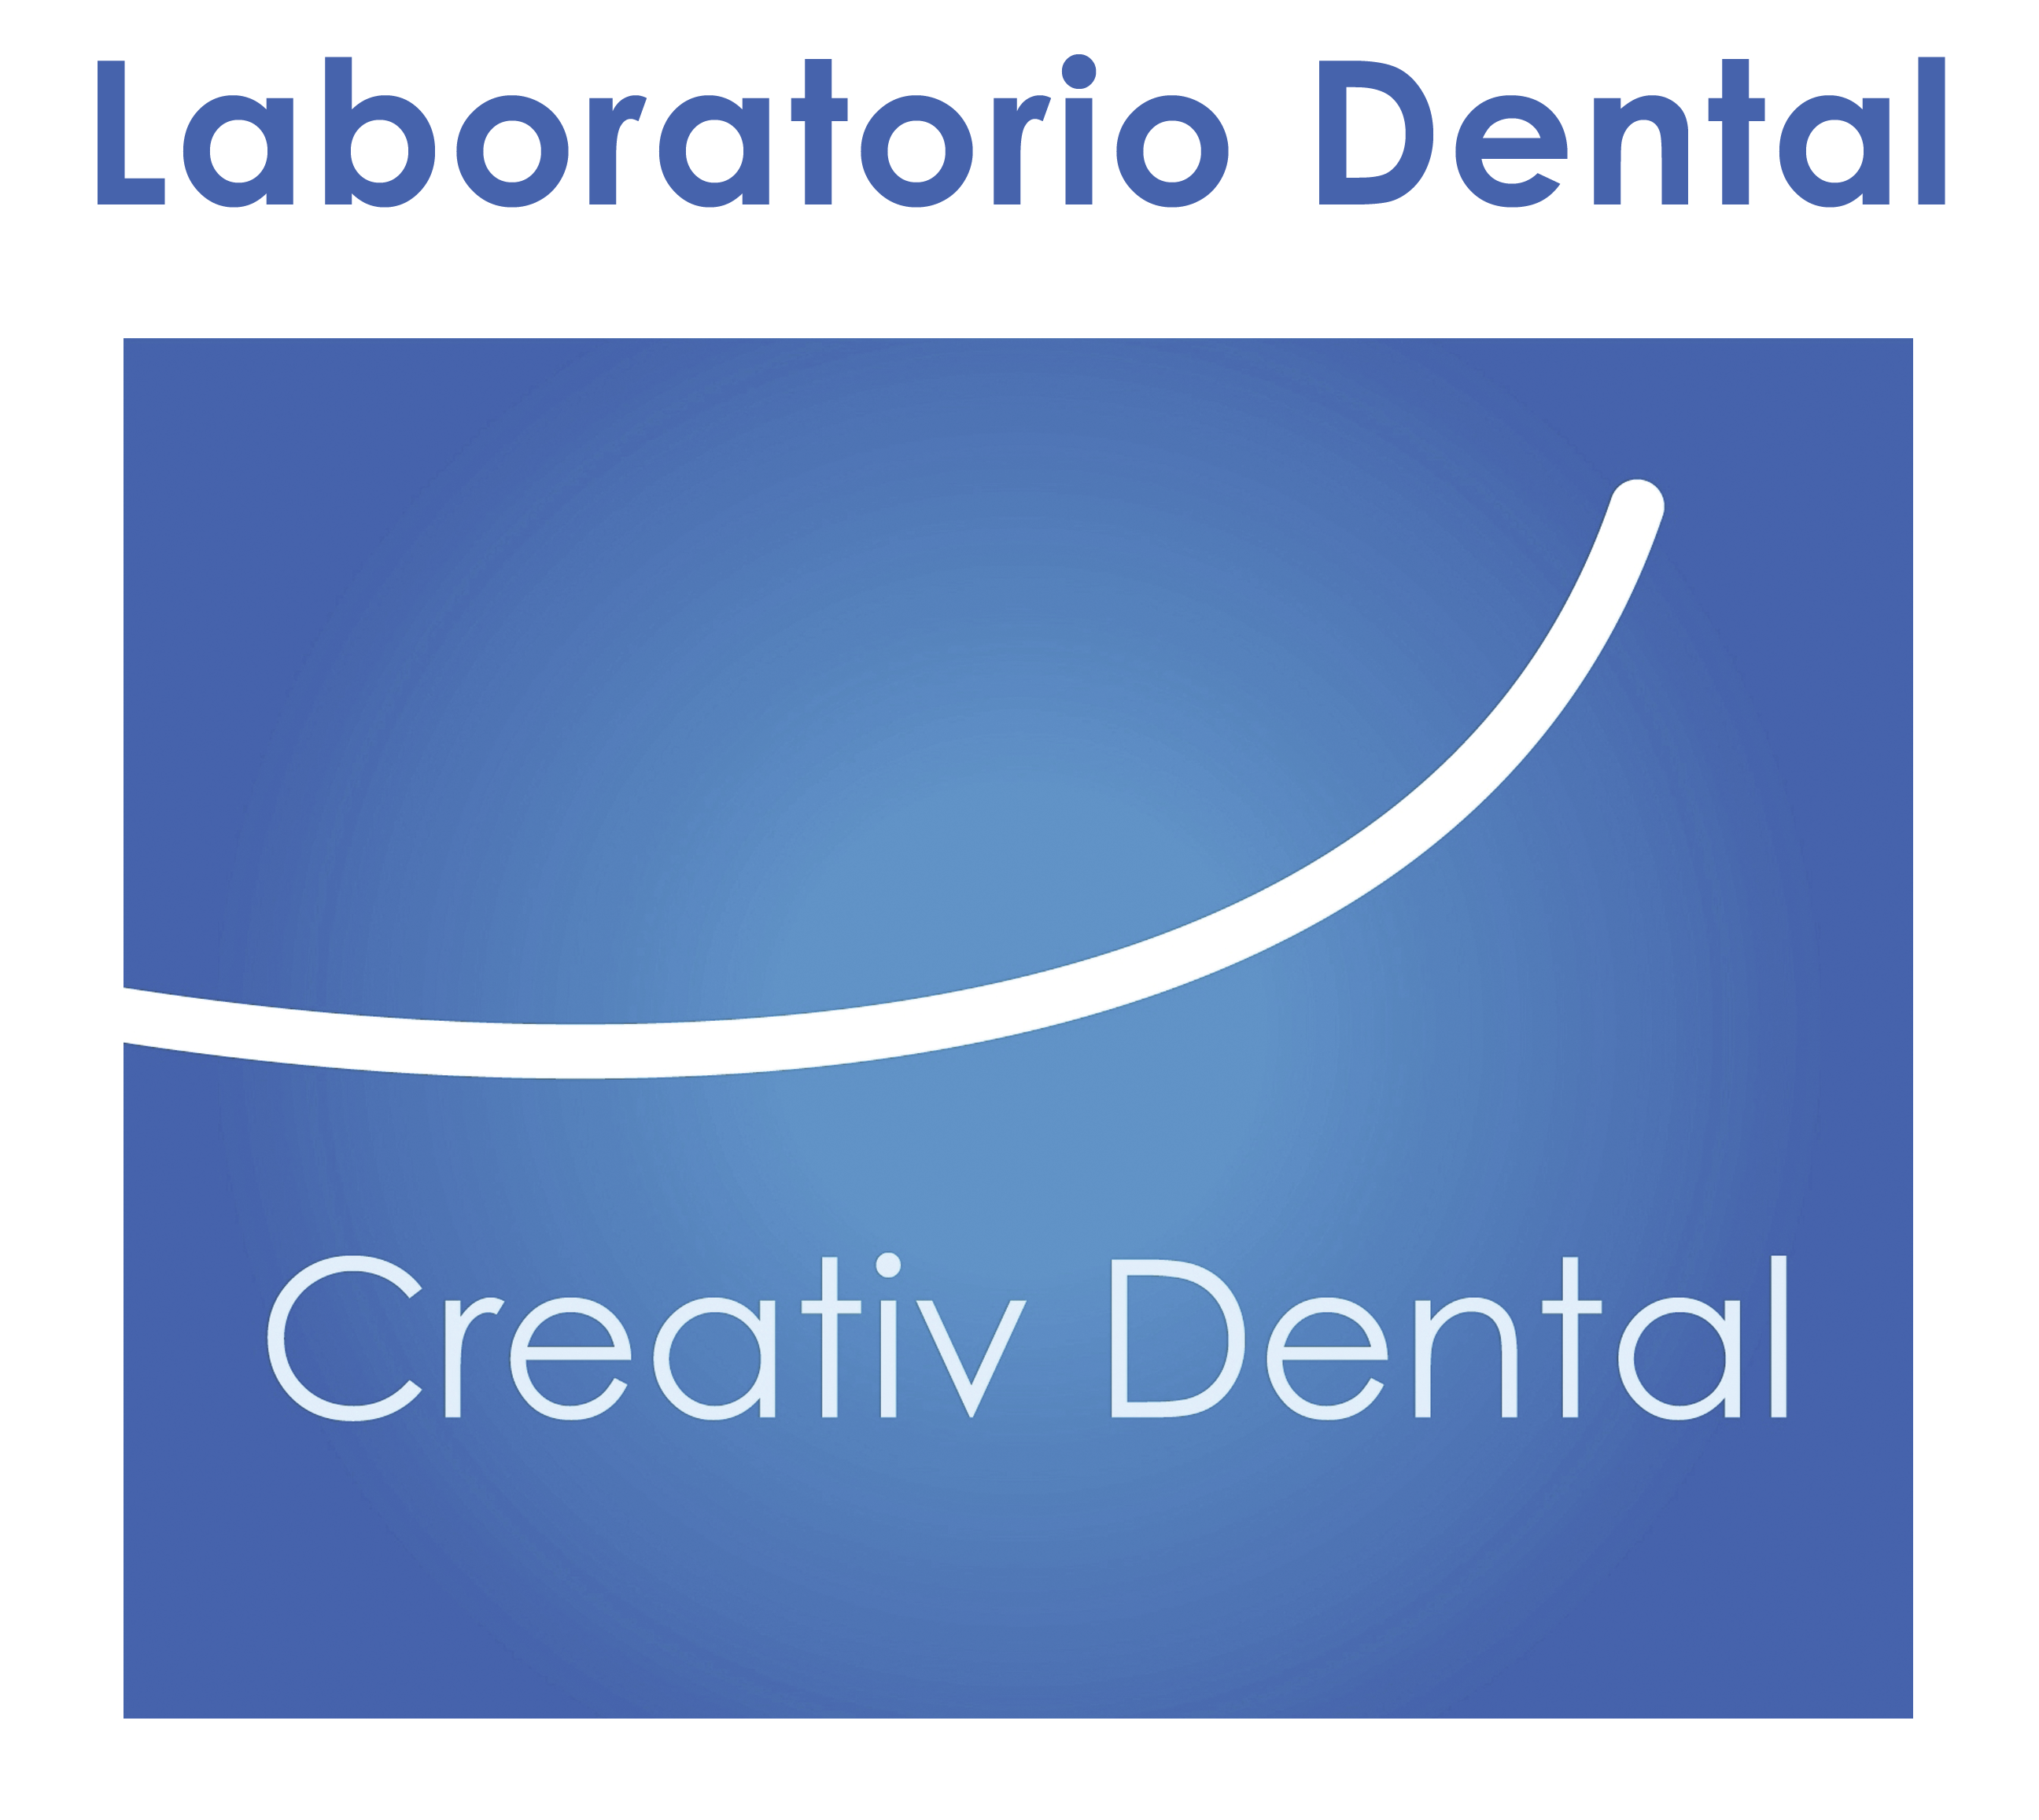 LOGO CREATIV DENTAL - copia